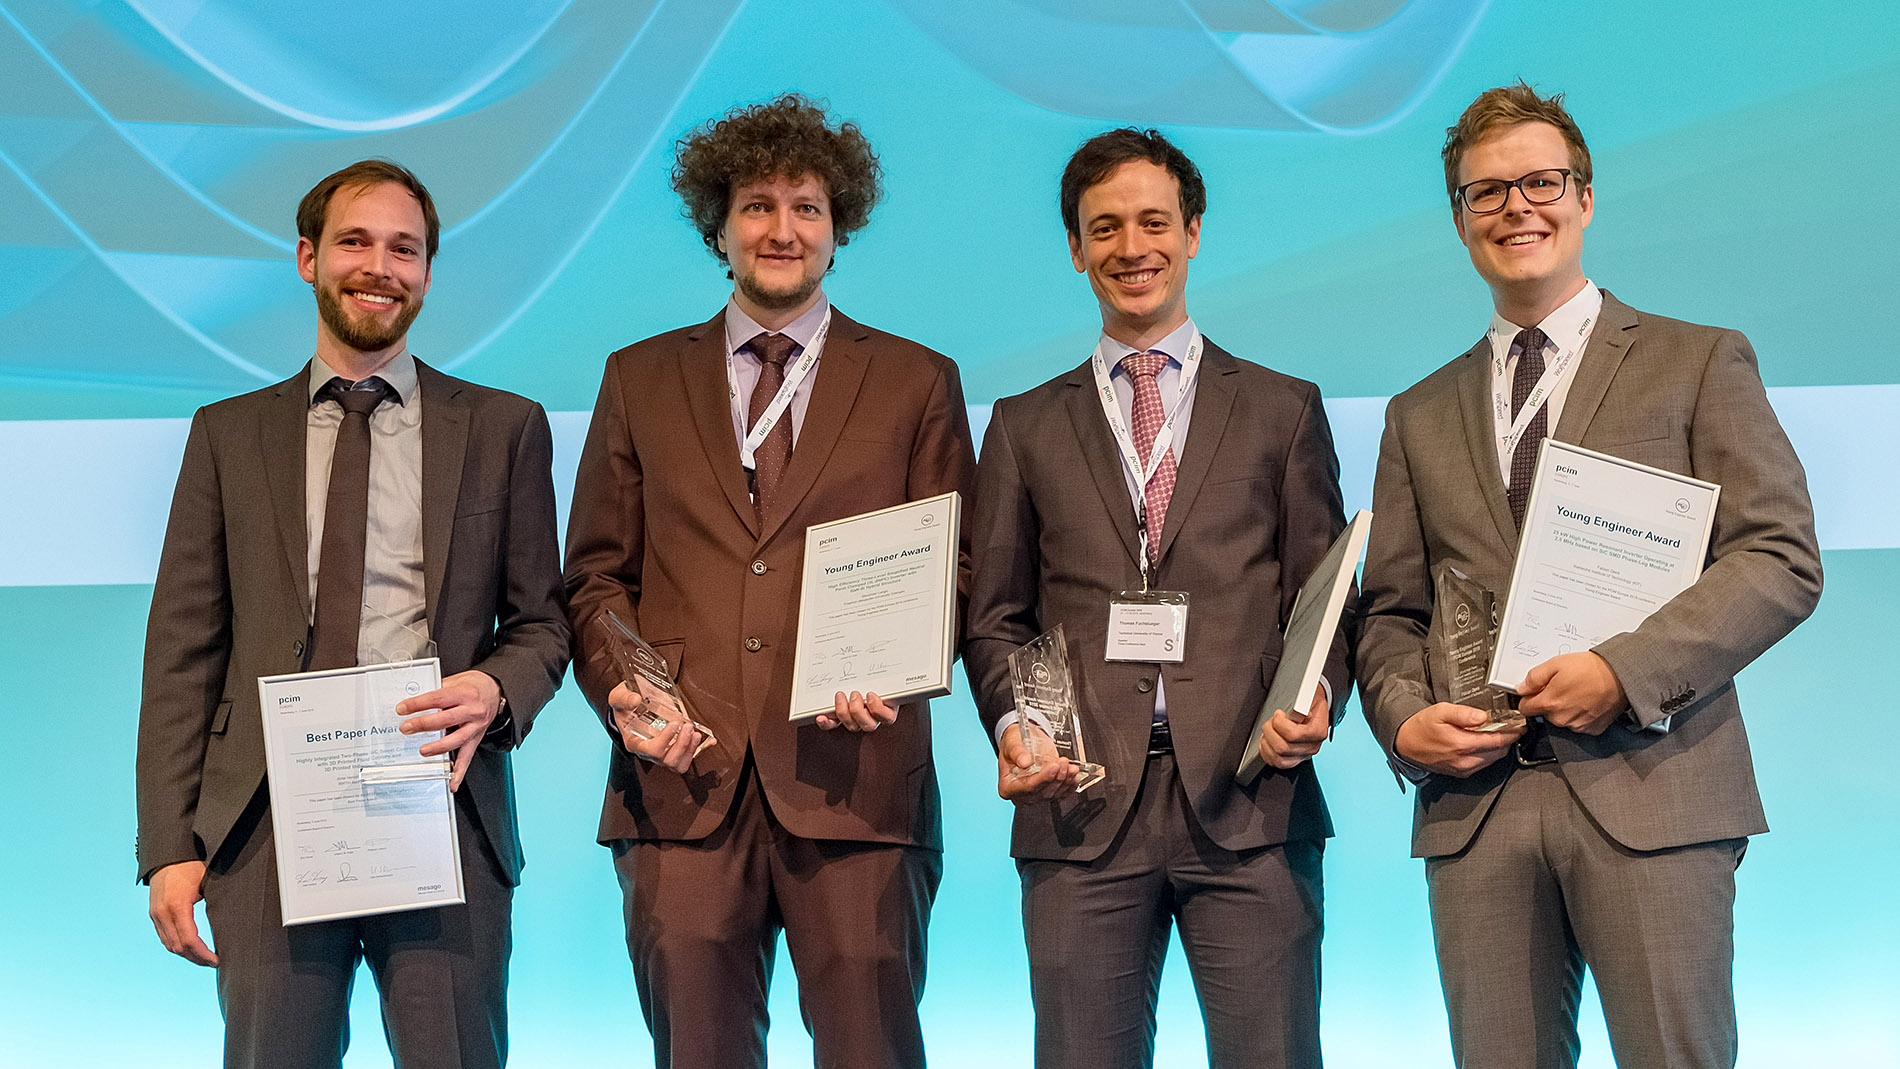 PCIM Europe 2018 Award winners